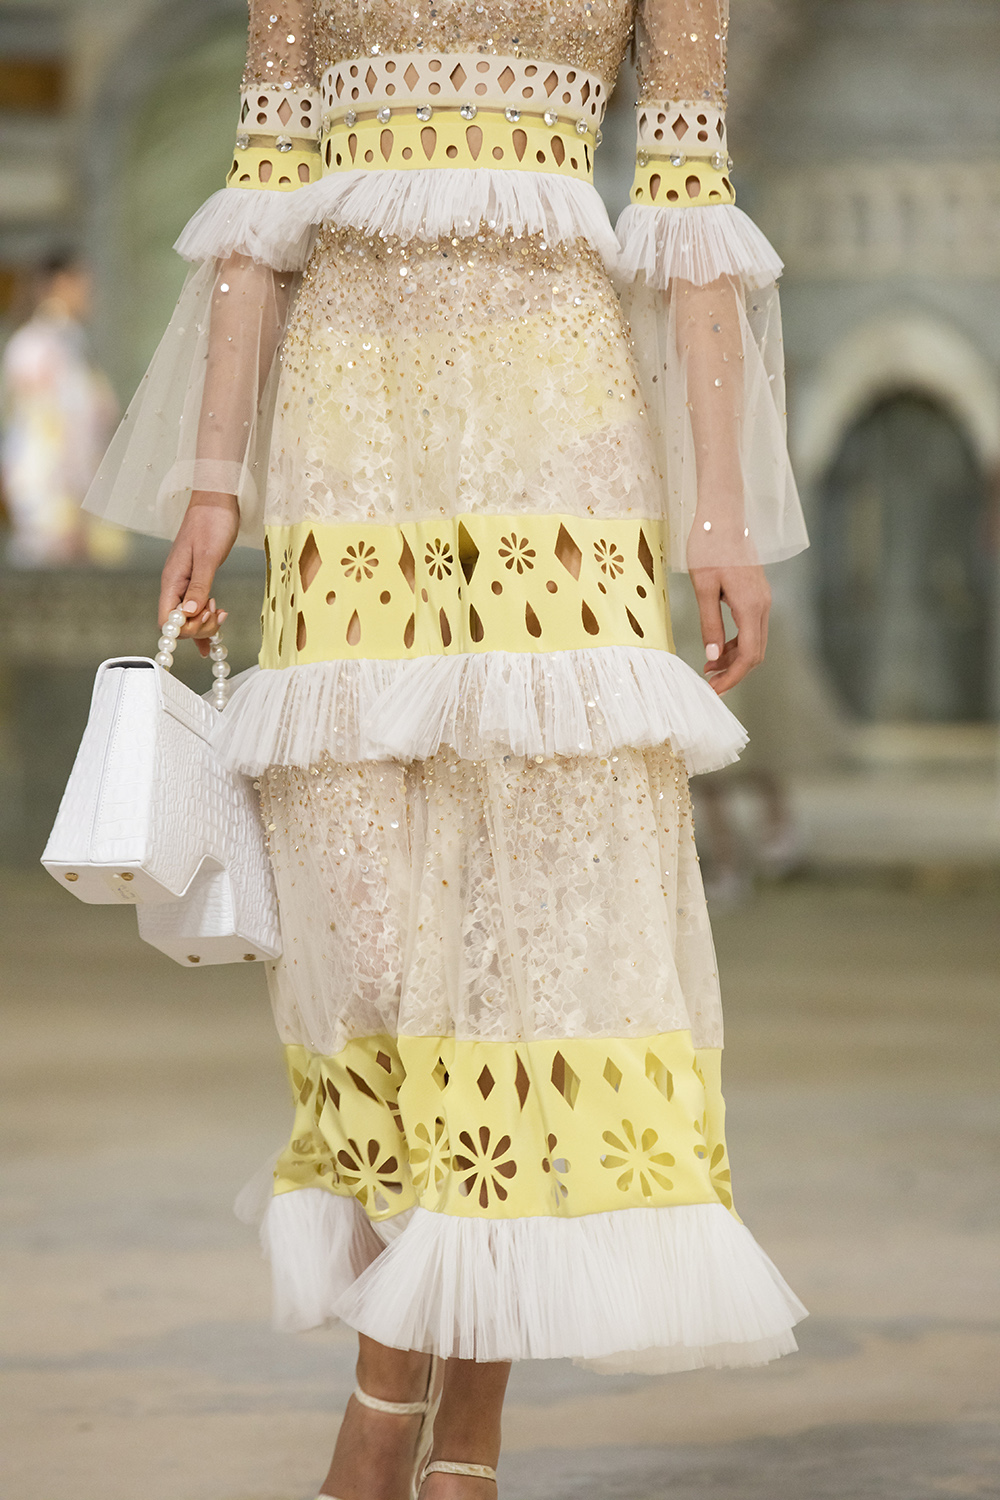 Tiered Lace Midi Dress from Georges Hobeika's Spring 2022 Collection #fashionstyle